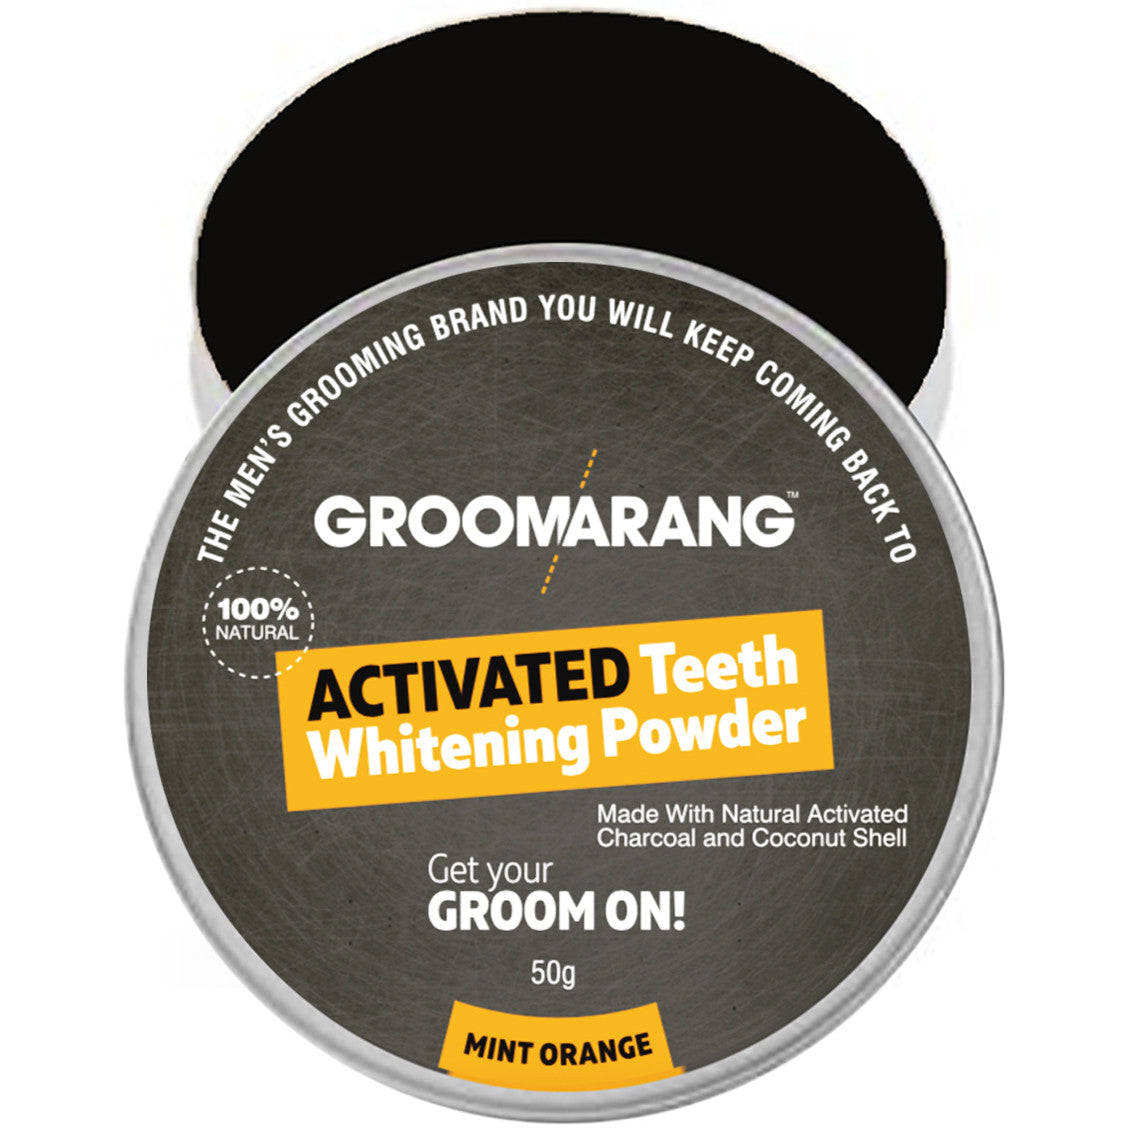 Groomarang Activated Teeth Whitening Powder - Activated Charcoal & Coconut Shell - Mint Orange by  Groomarang